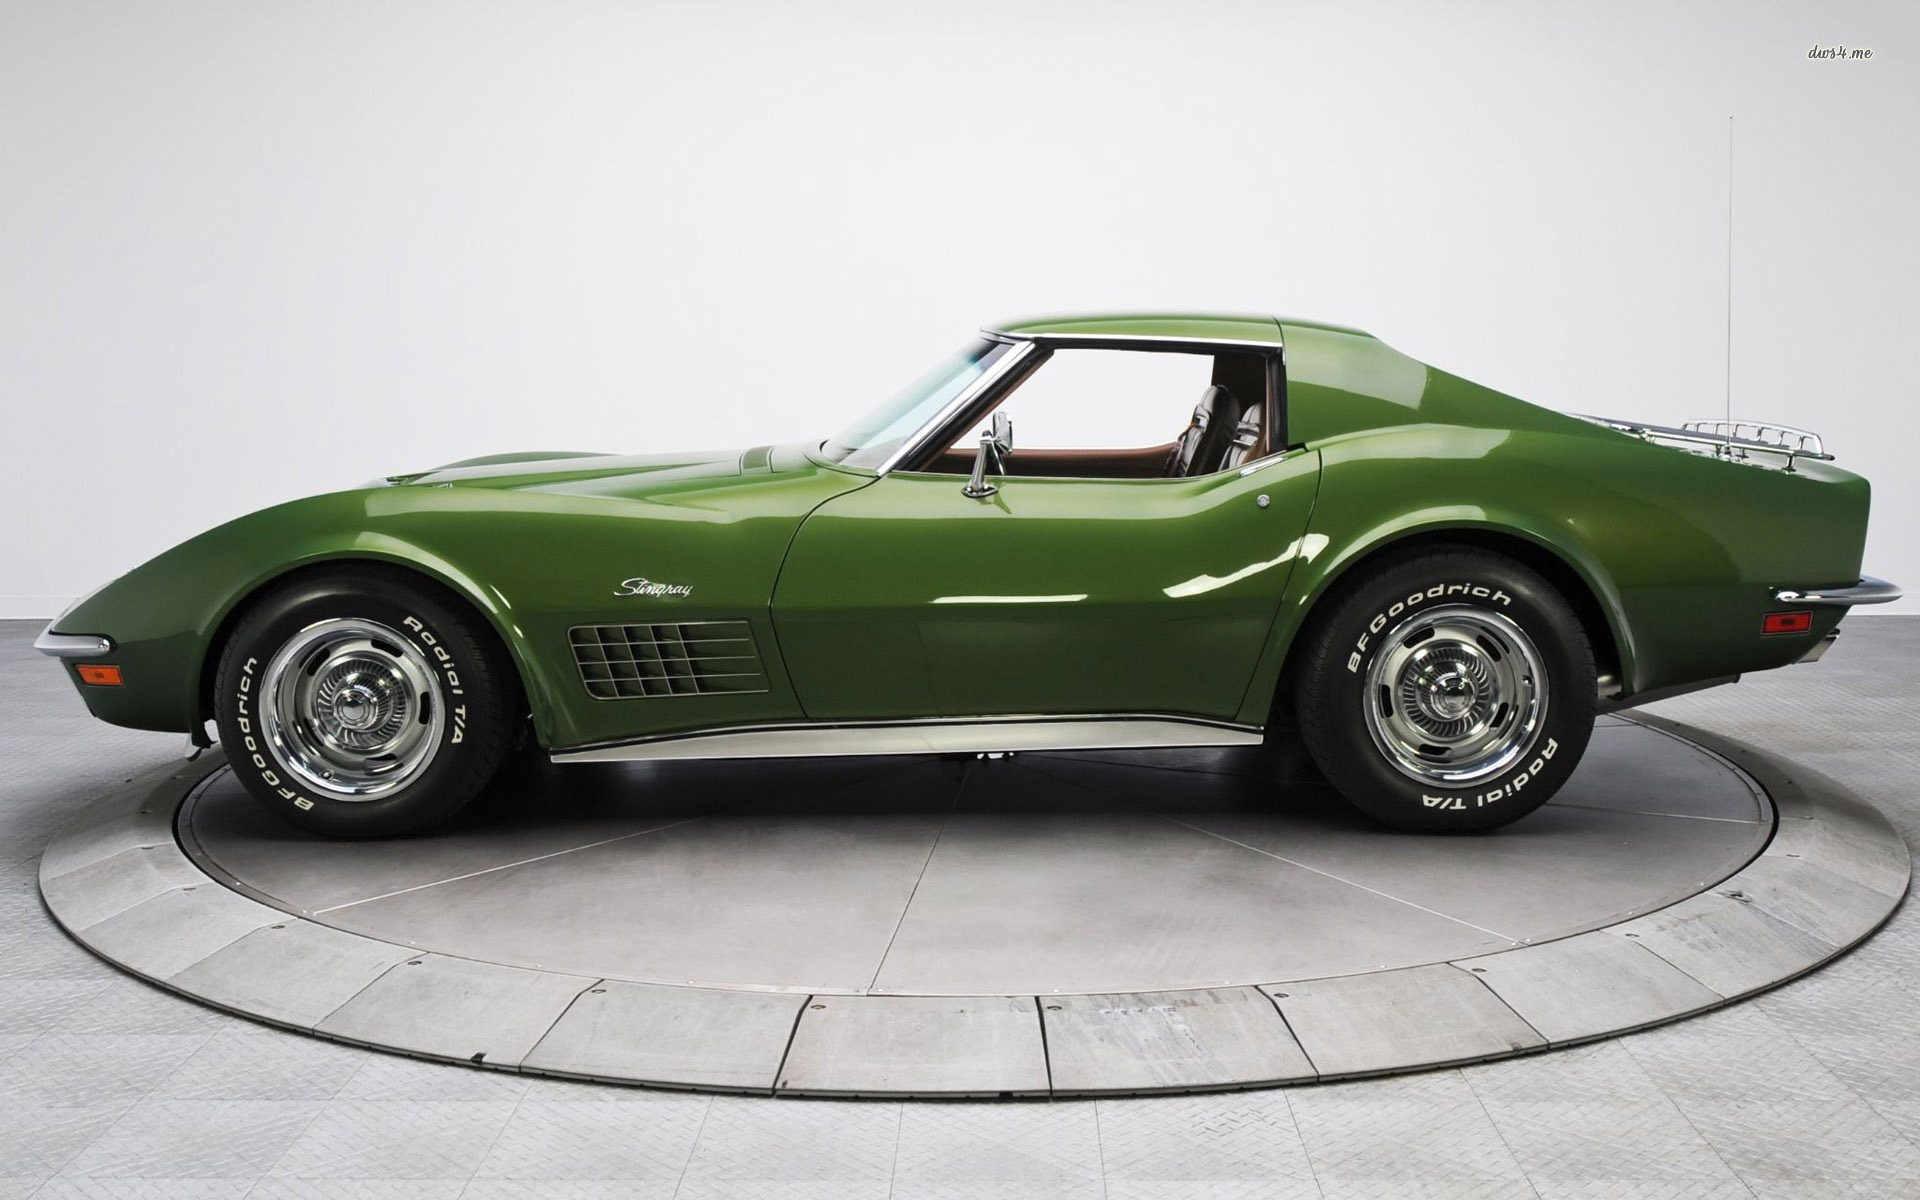 23471 chevrolet corvette stingray 454 1920x1200 car wallpaper 1970 c3 corvette ultimate guide (overview, specs, vin info 1994 LT1 Corvette at n-0.co